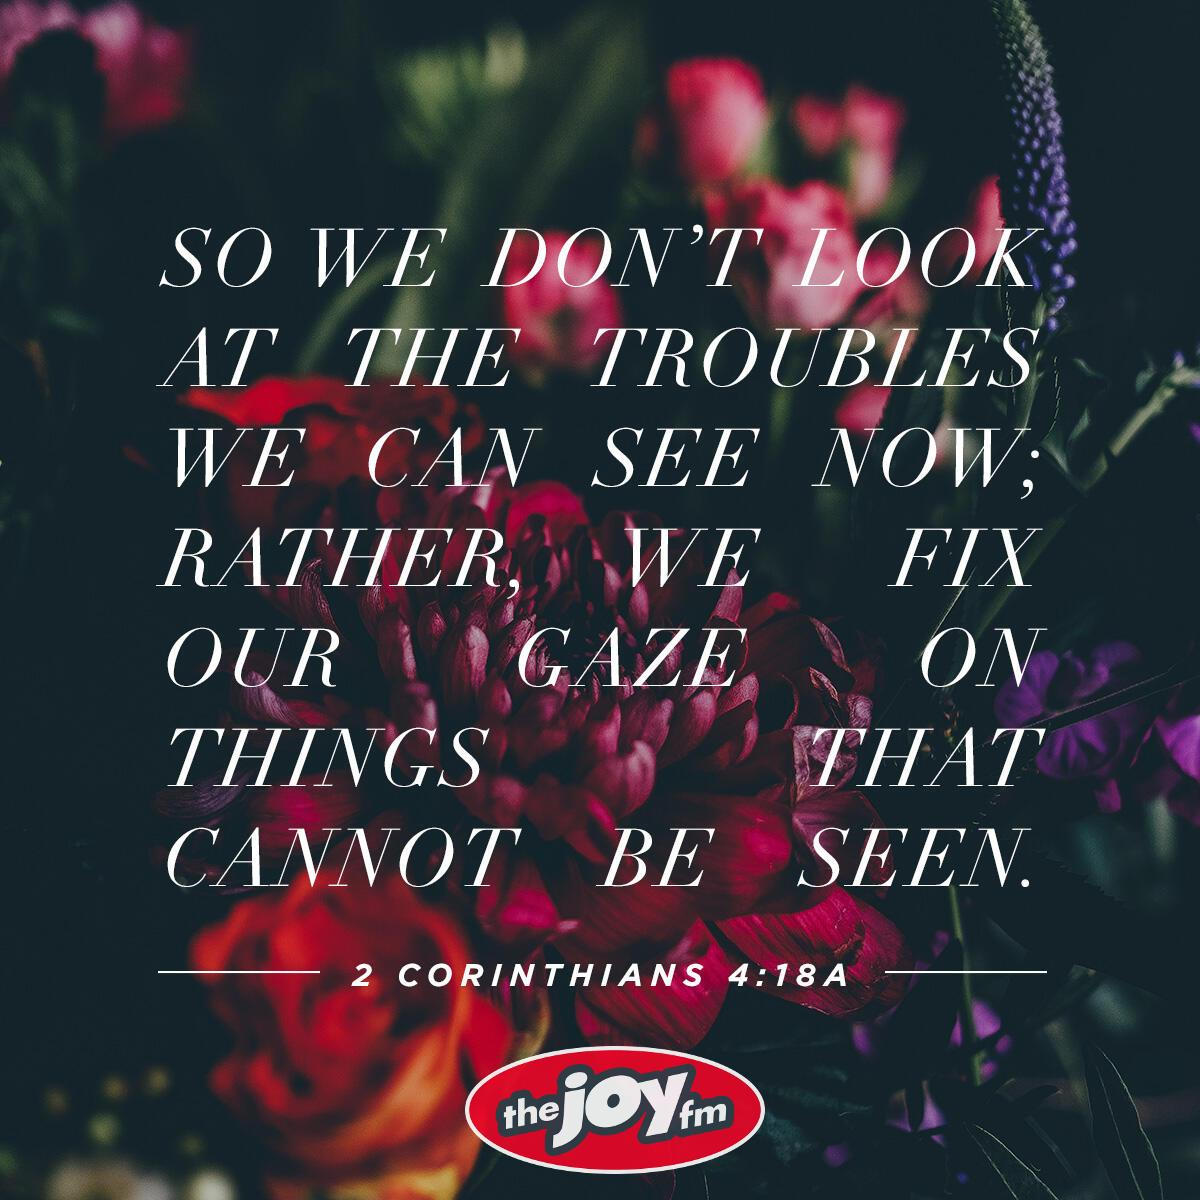 2 Corinthians 4:18a - Verse of the Day